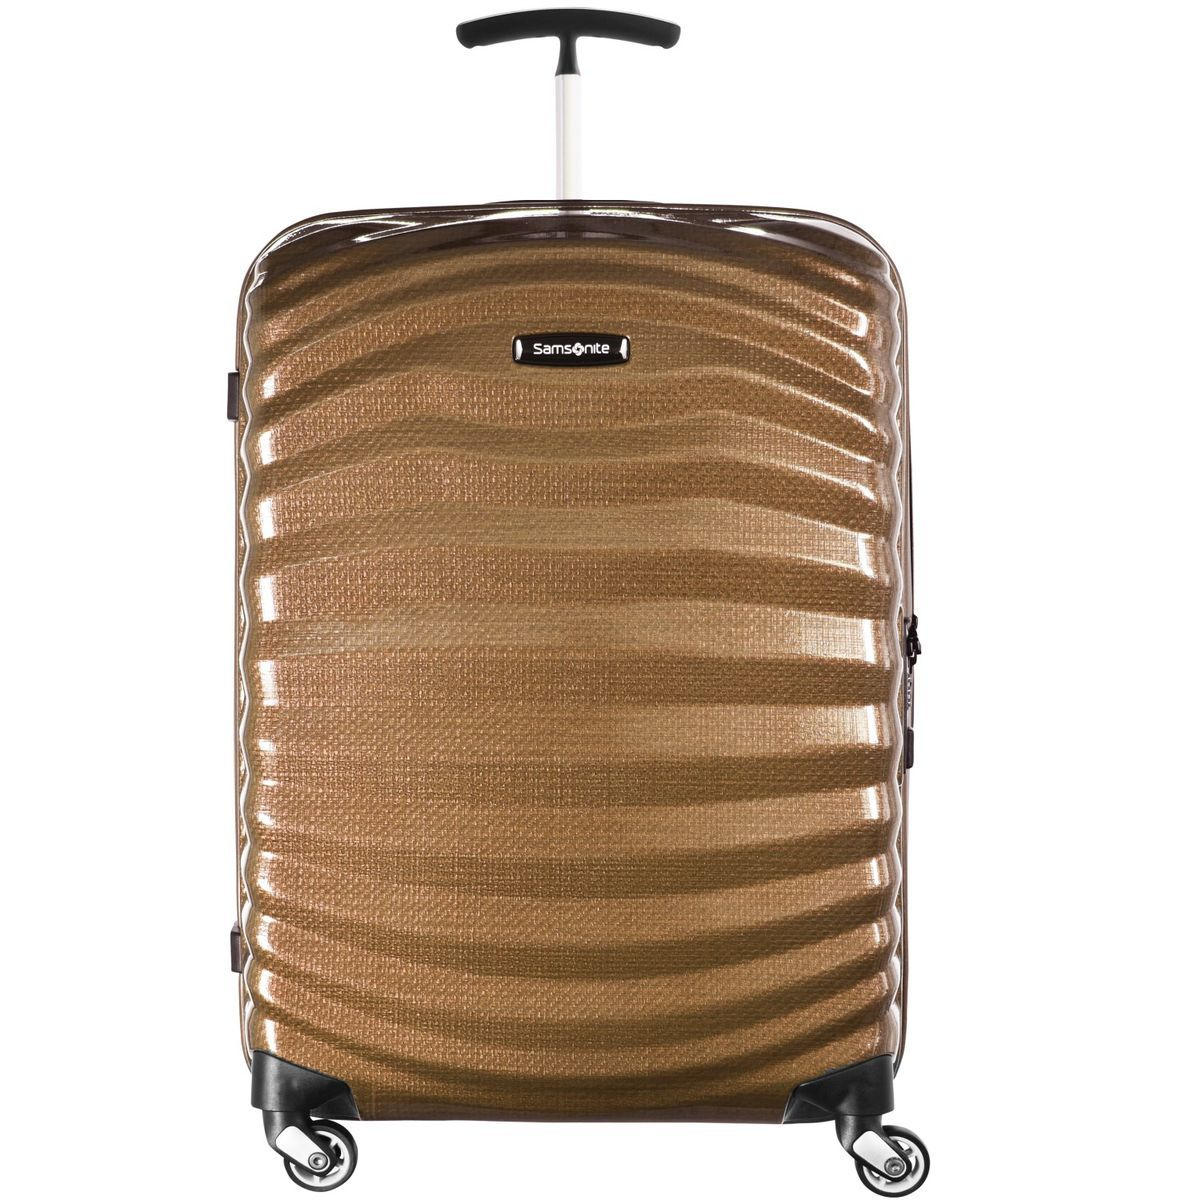 Samsonite Lite-Shock Spinner 4-Rollen Trolley 75 cm, sand